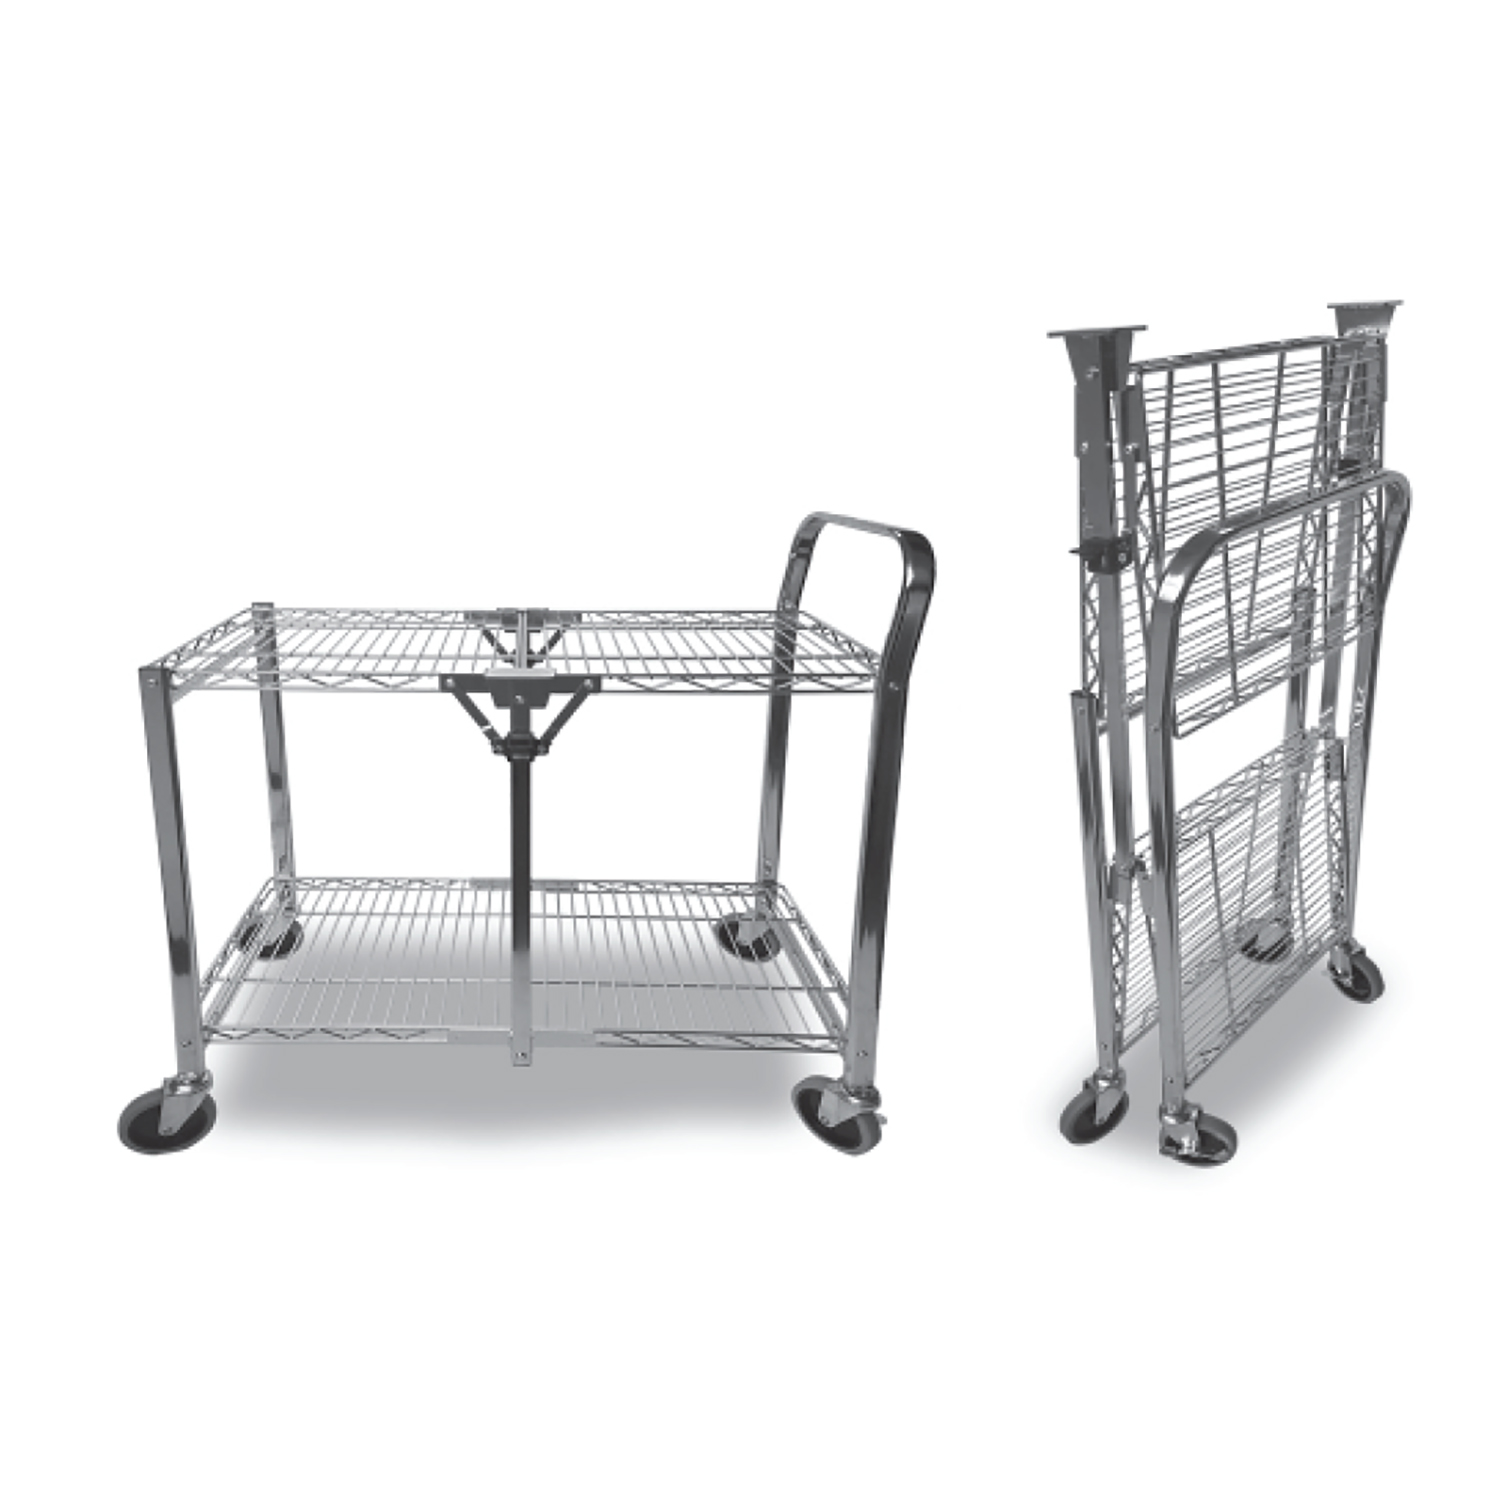 Large - StowAway Folding Utility Cart - STOW-07011